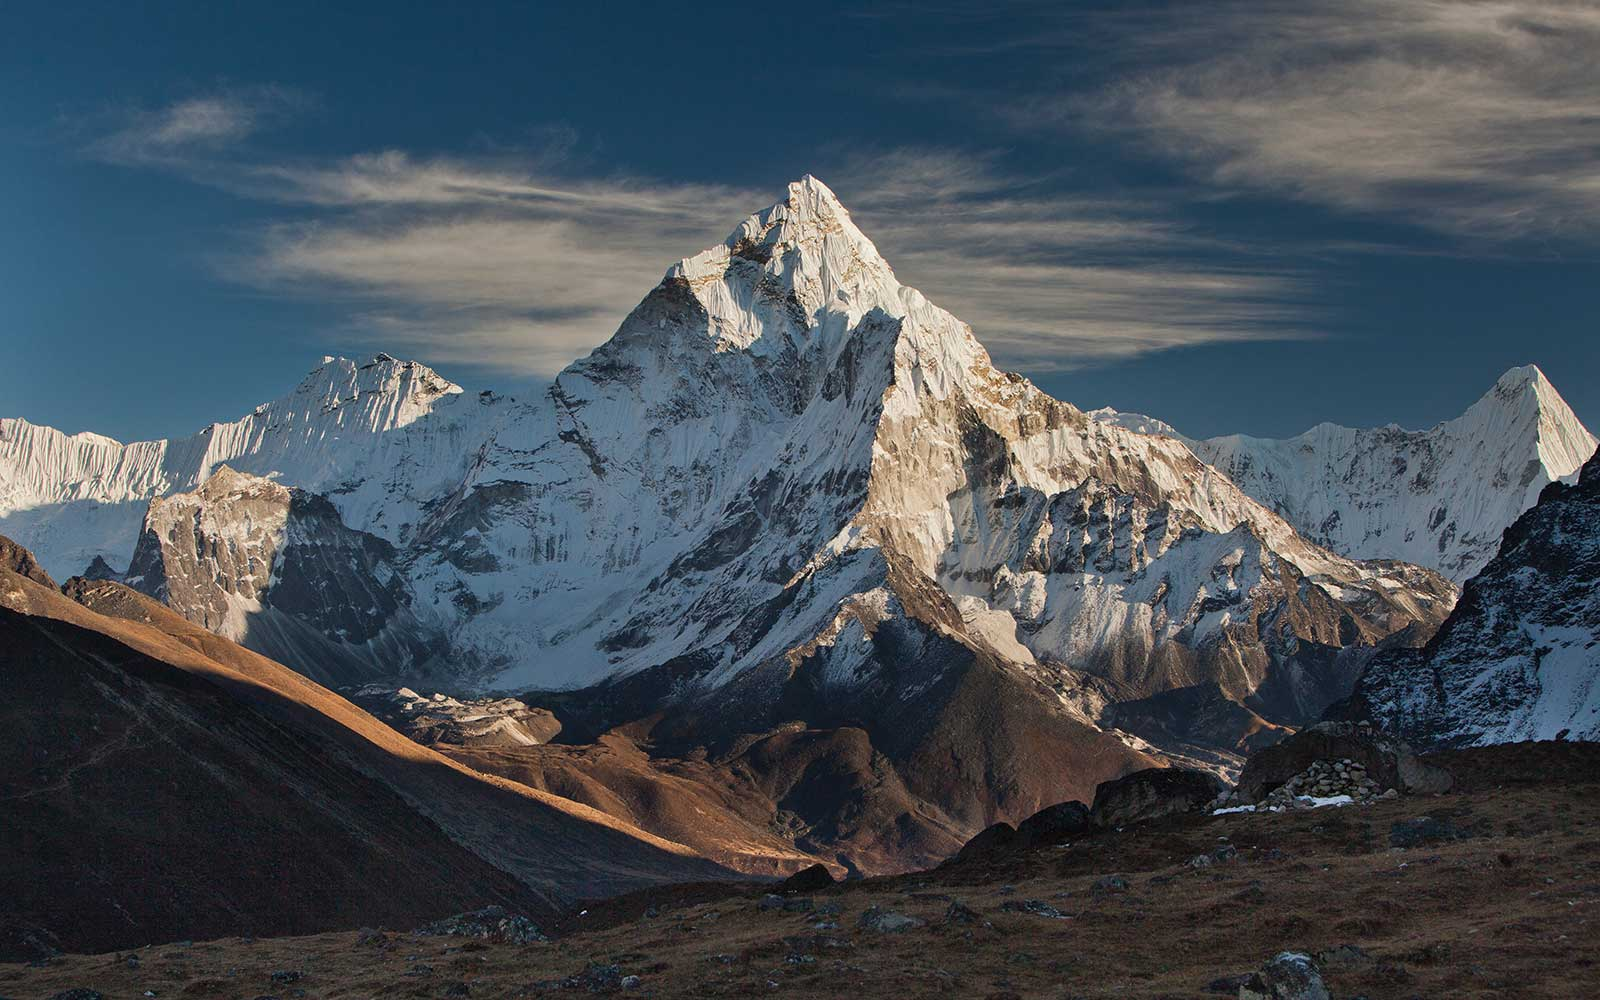 In Photos: Mount Everest